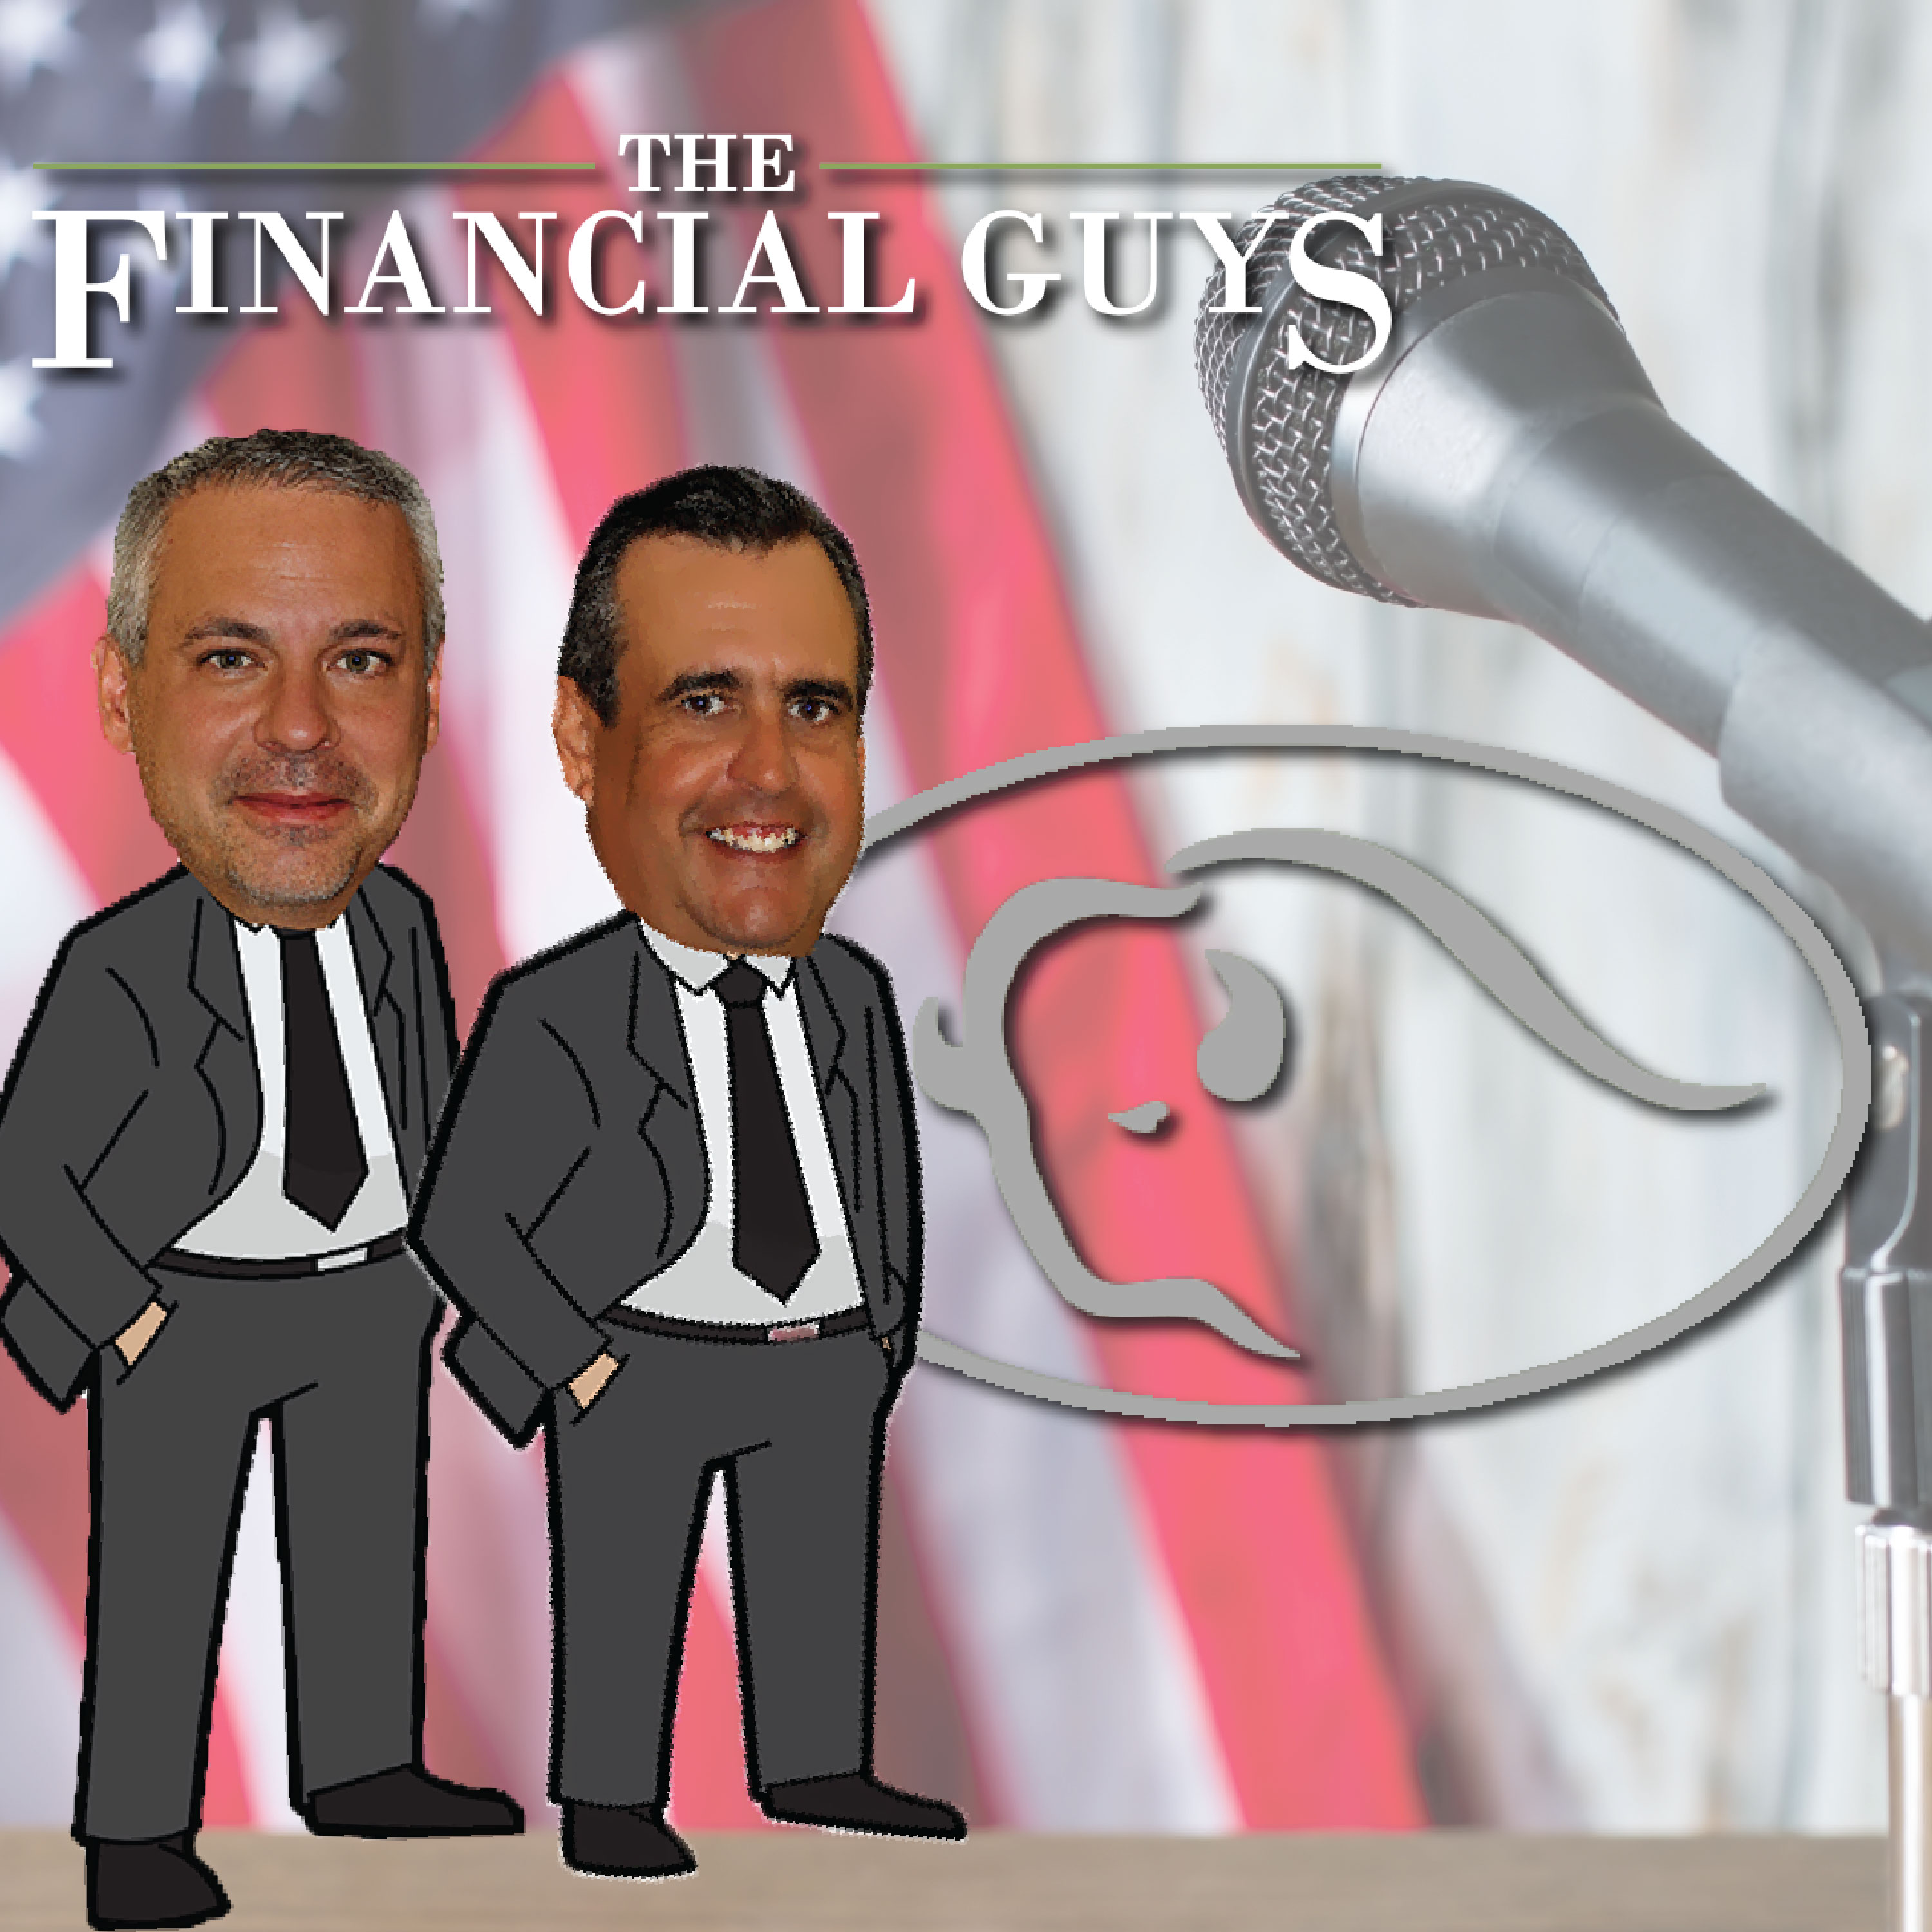 The Financial Guys